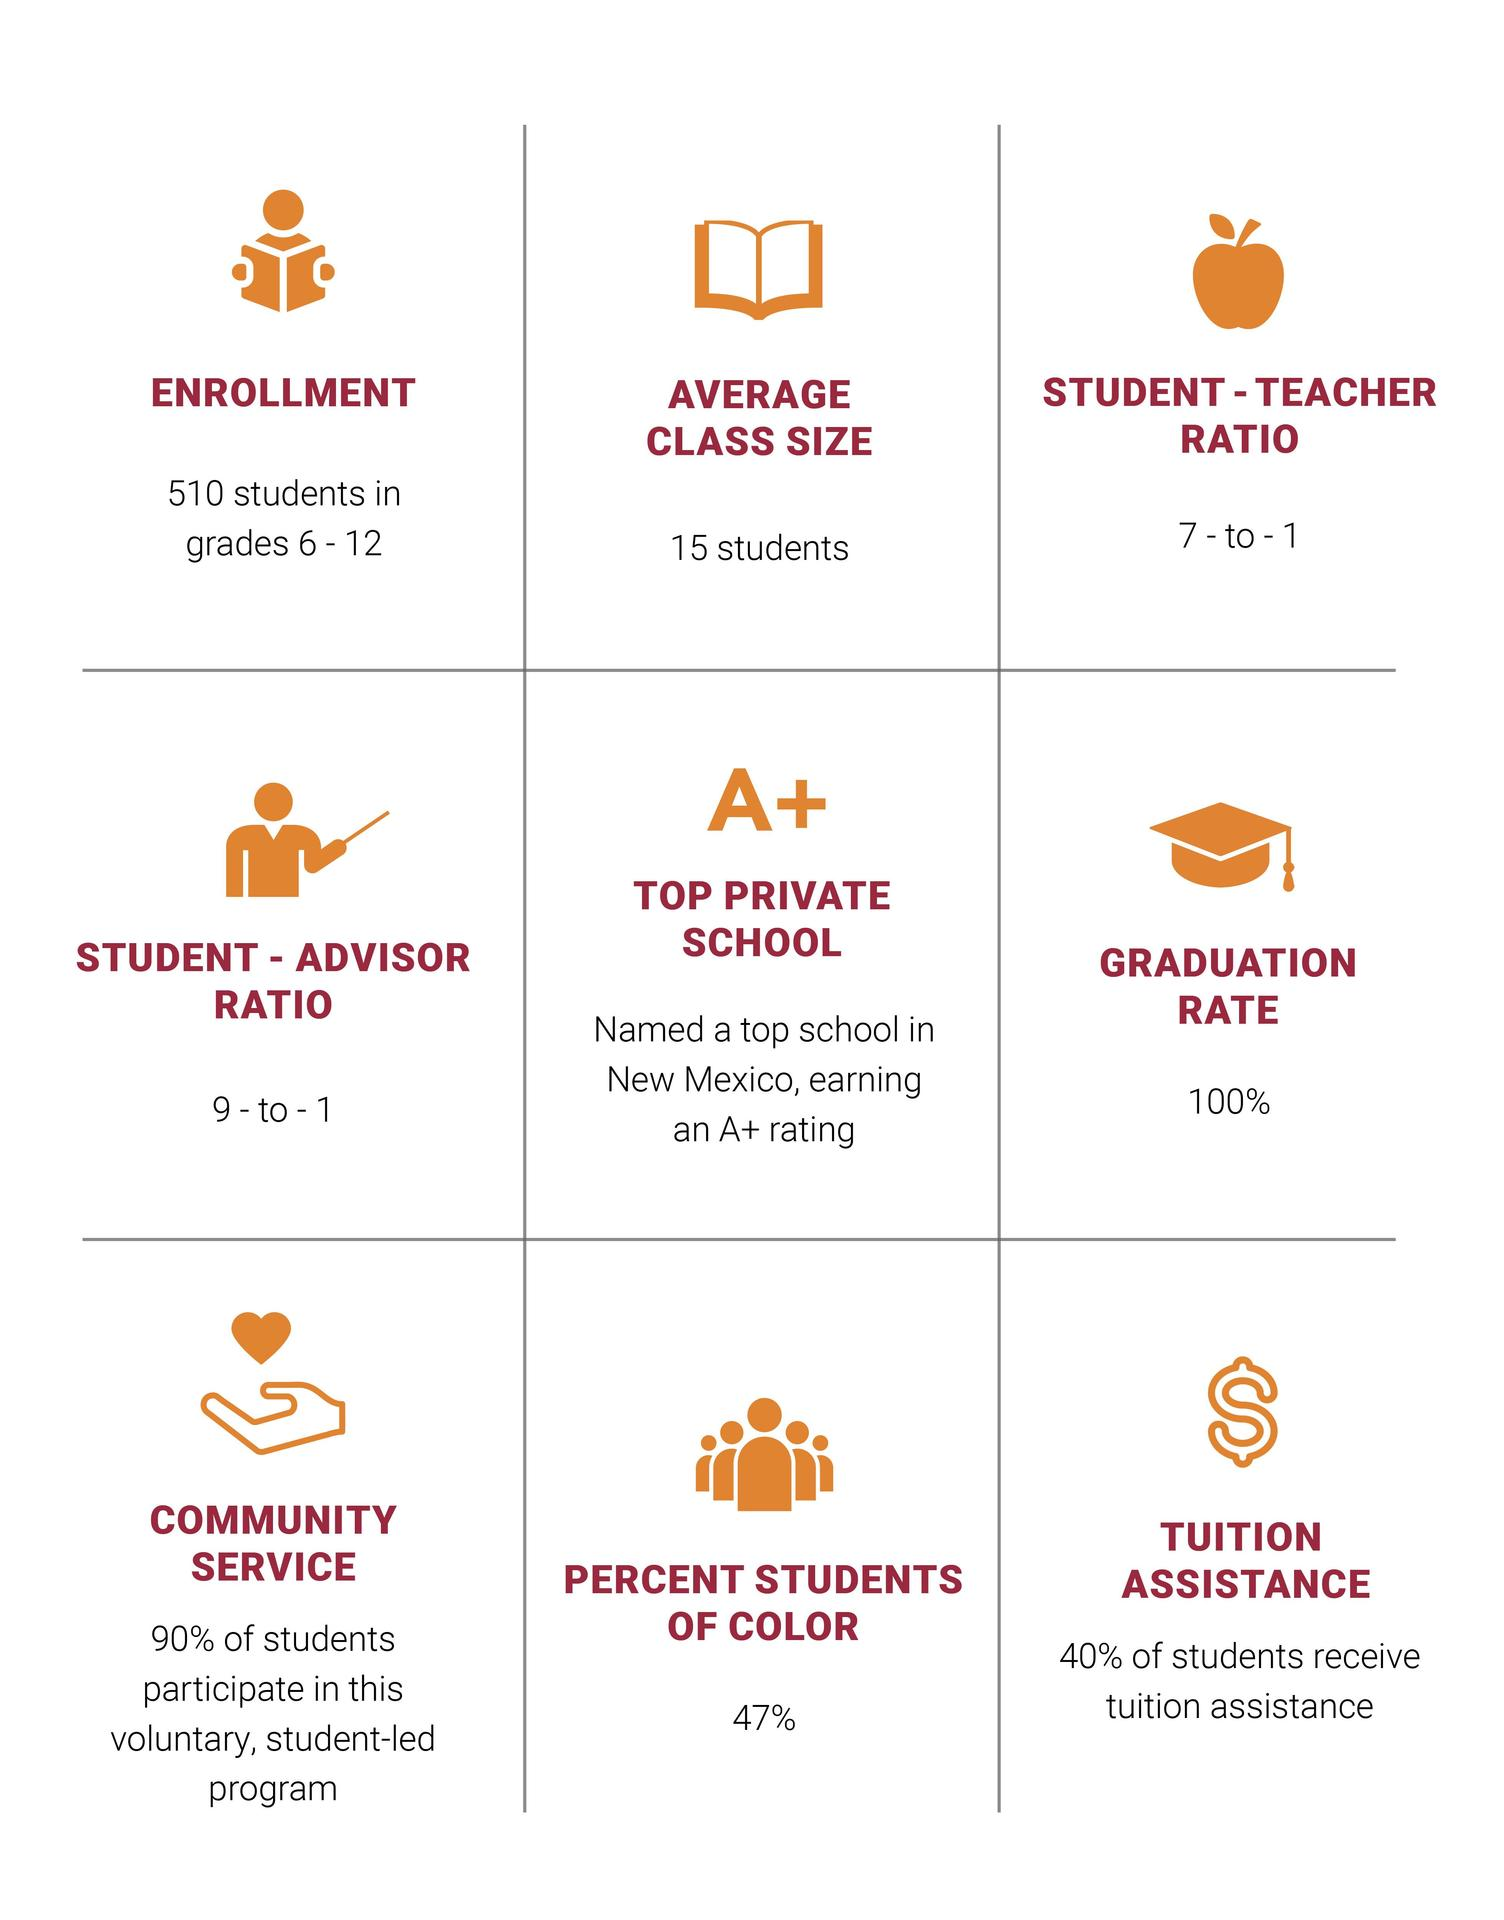 Fast Facts about Sandia Prep - A Top private school in New Mexico